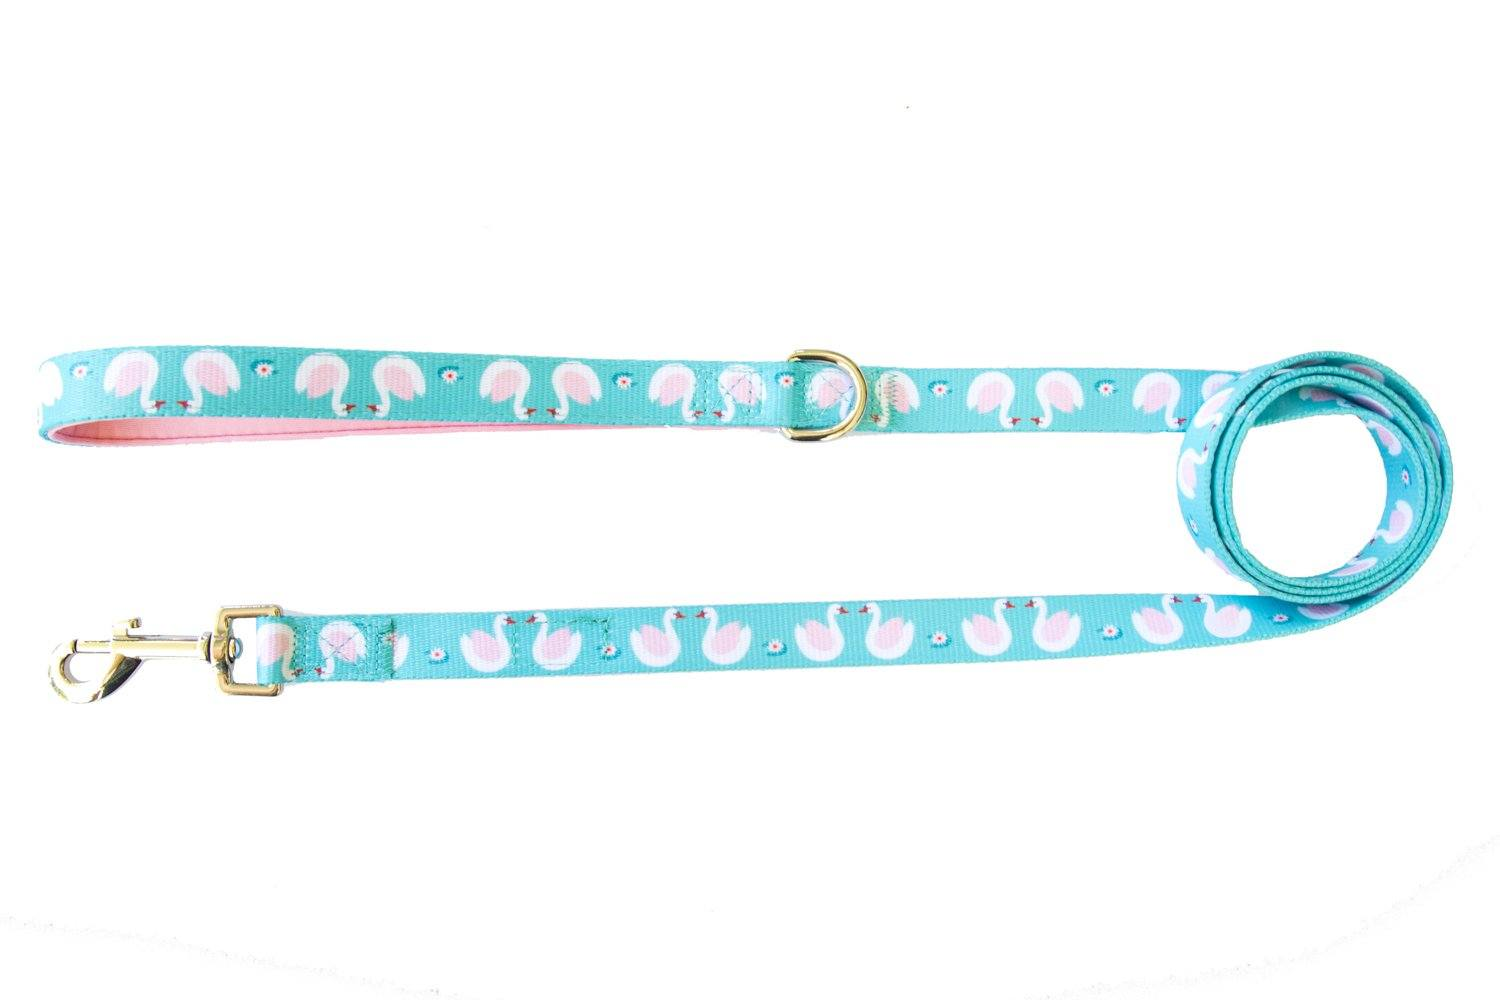 Swans - Dog Leash-Dizzy Dog Collars-Dizzy Dog Collars